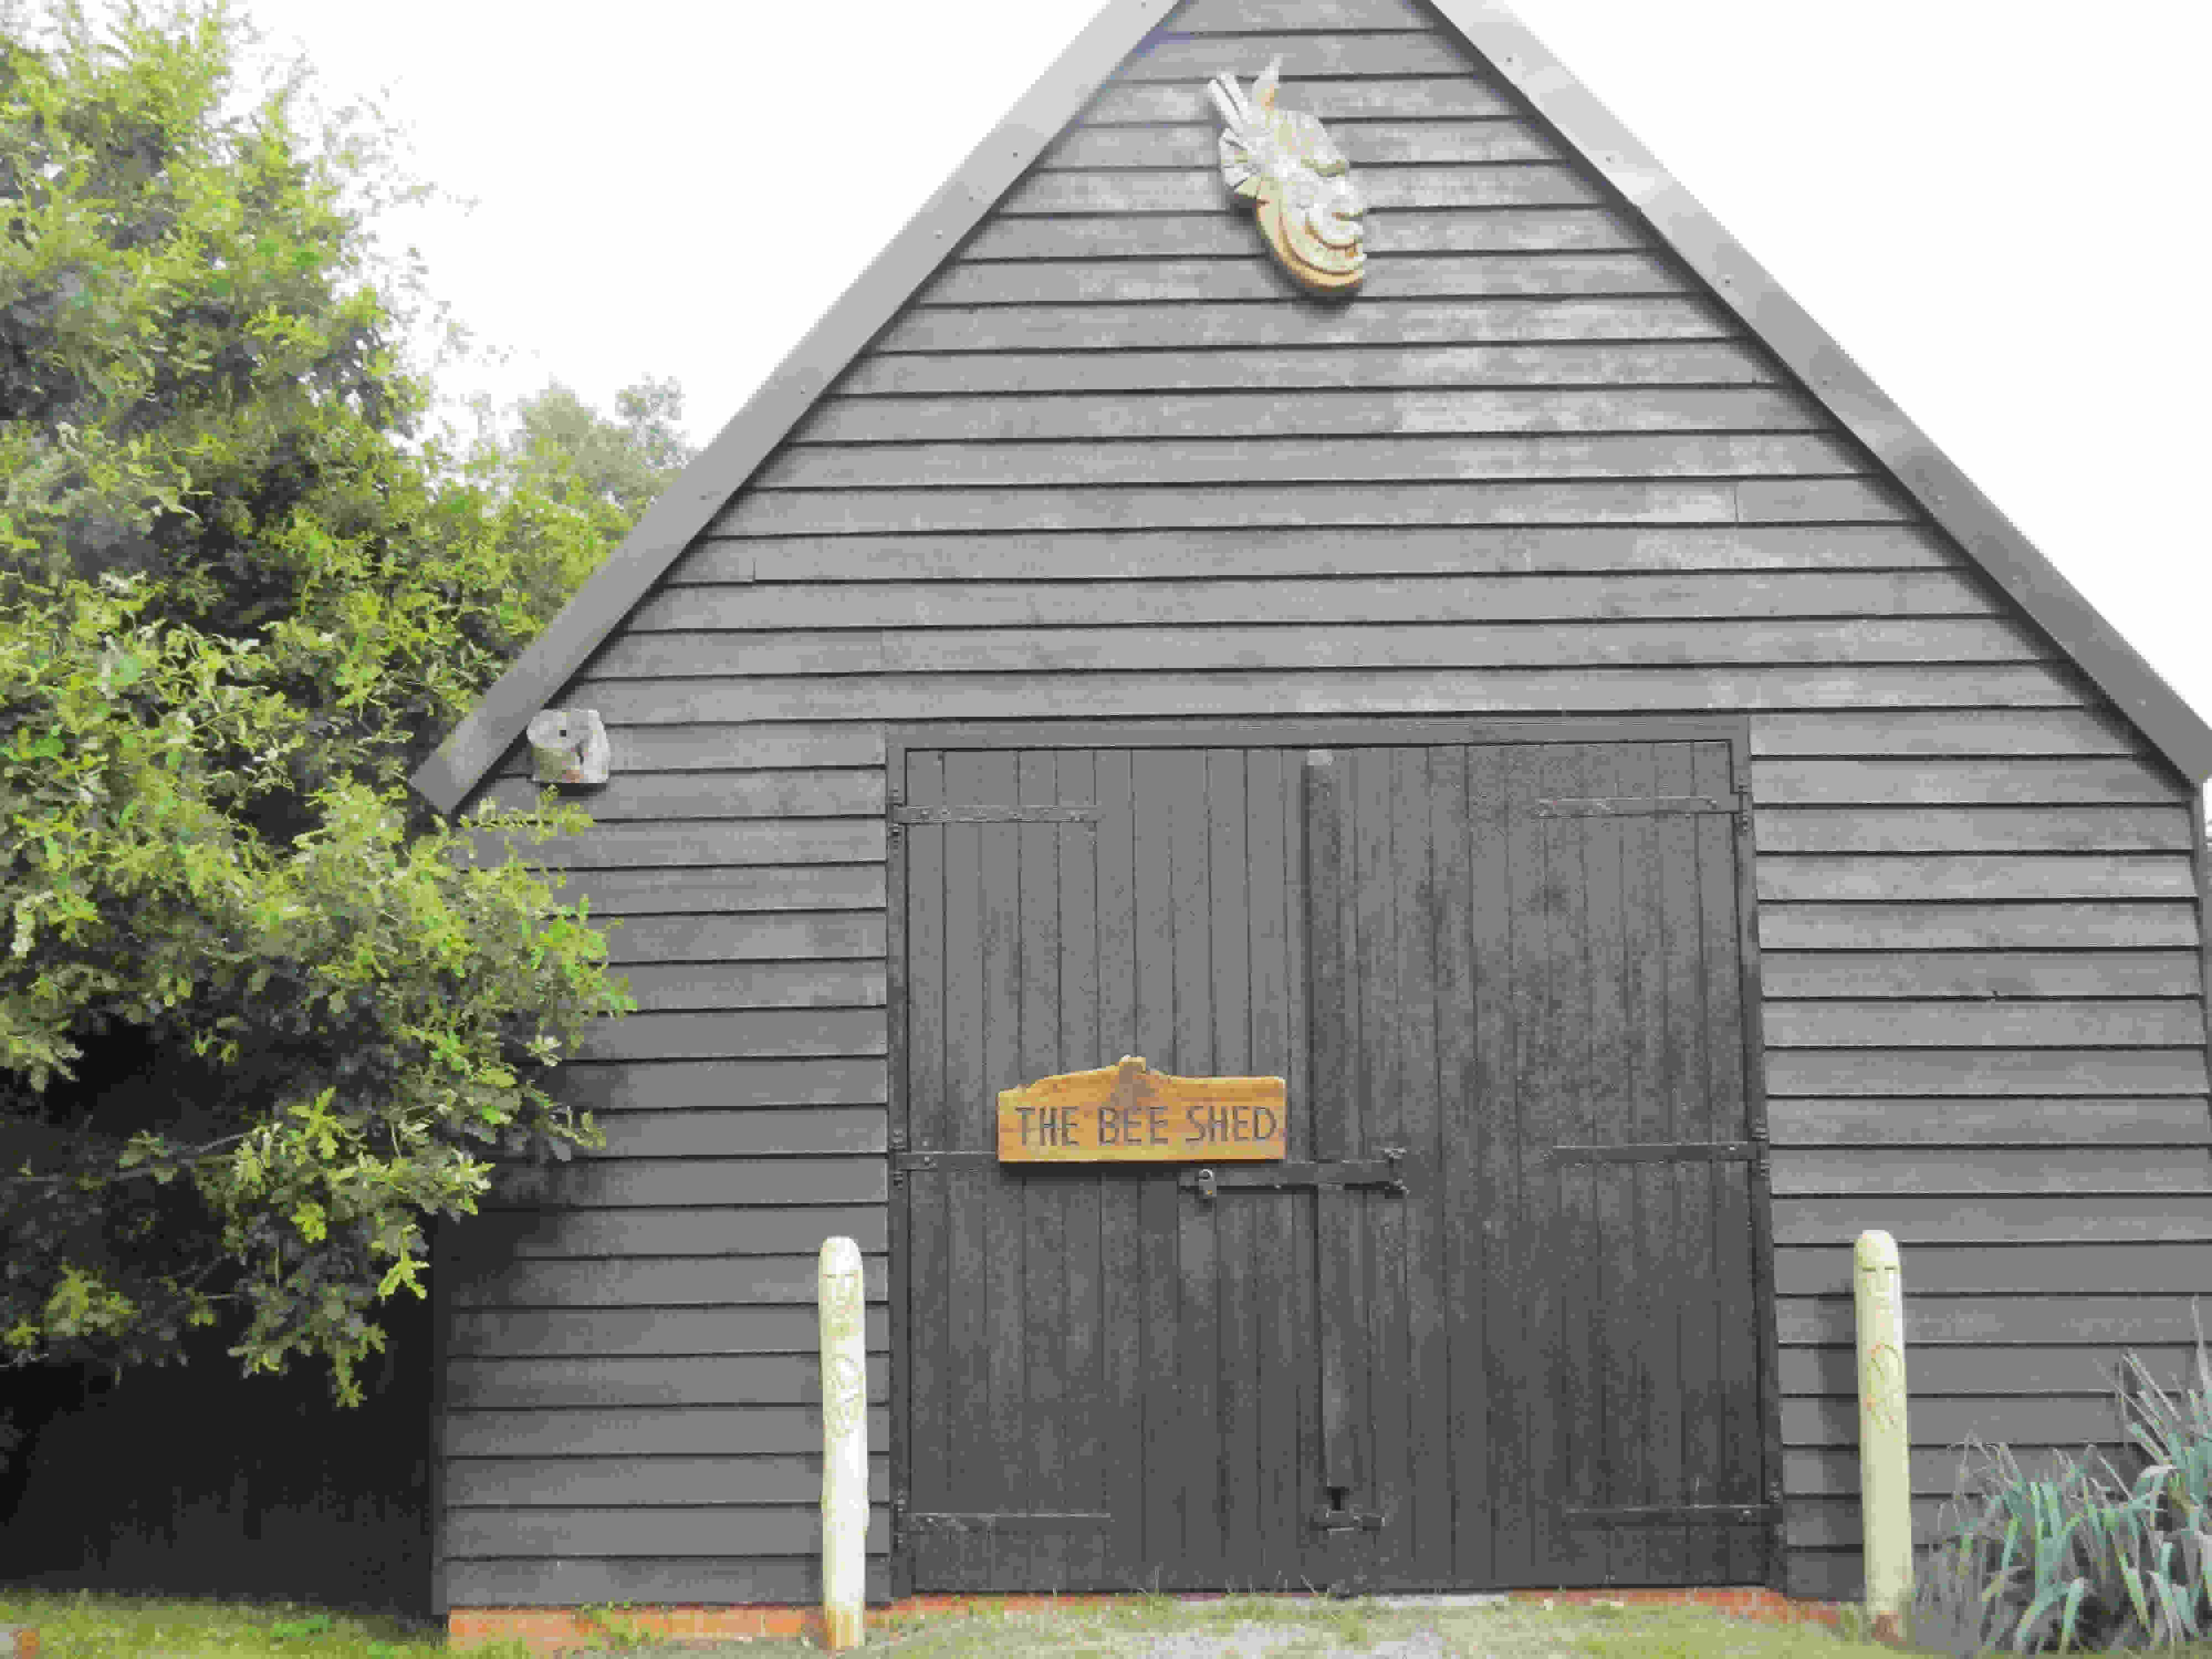 shed buy the archer has a birmingham al solution traditional sheds to rent dealers buildings storage places or modern